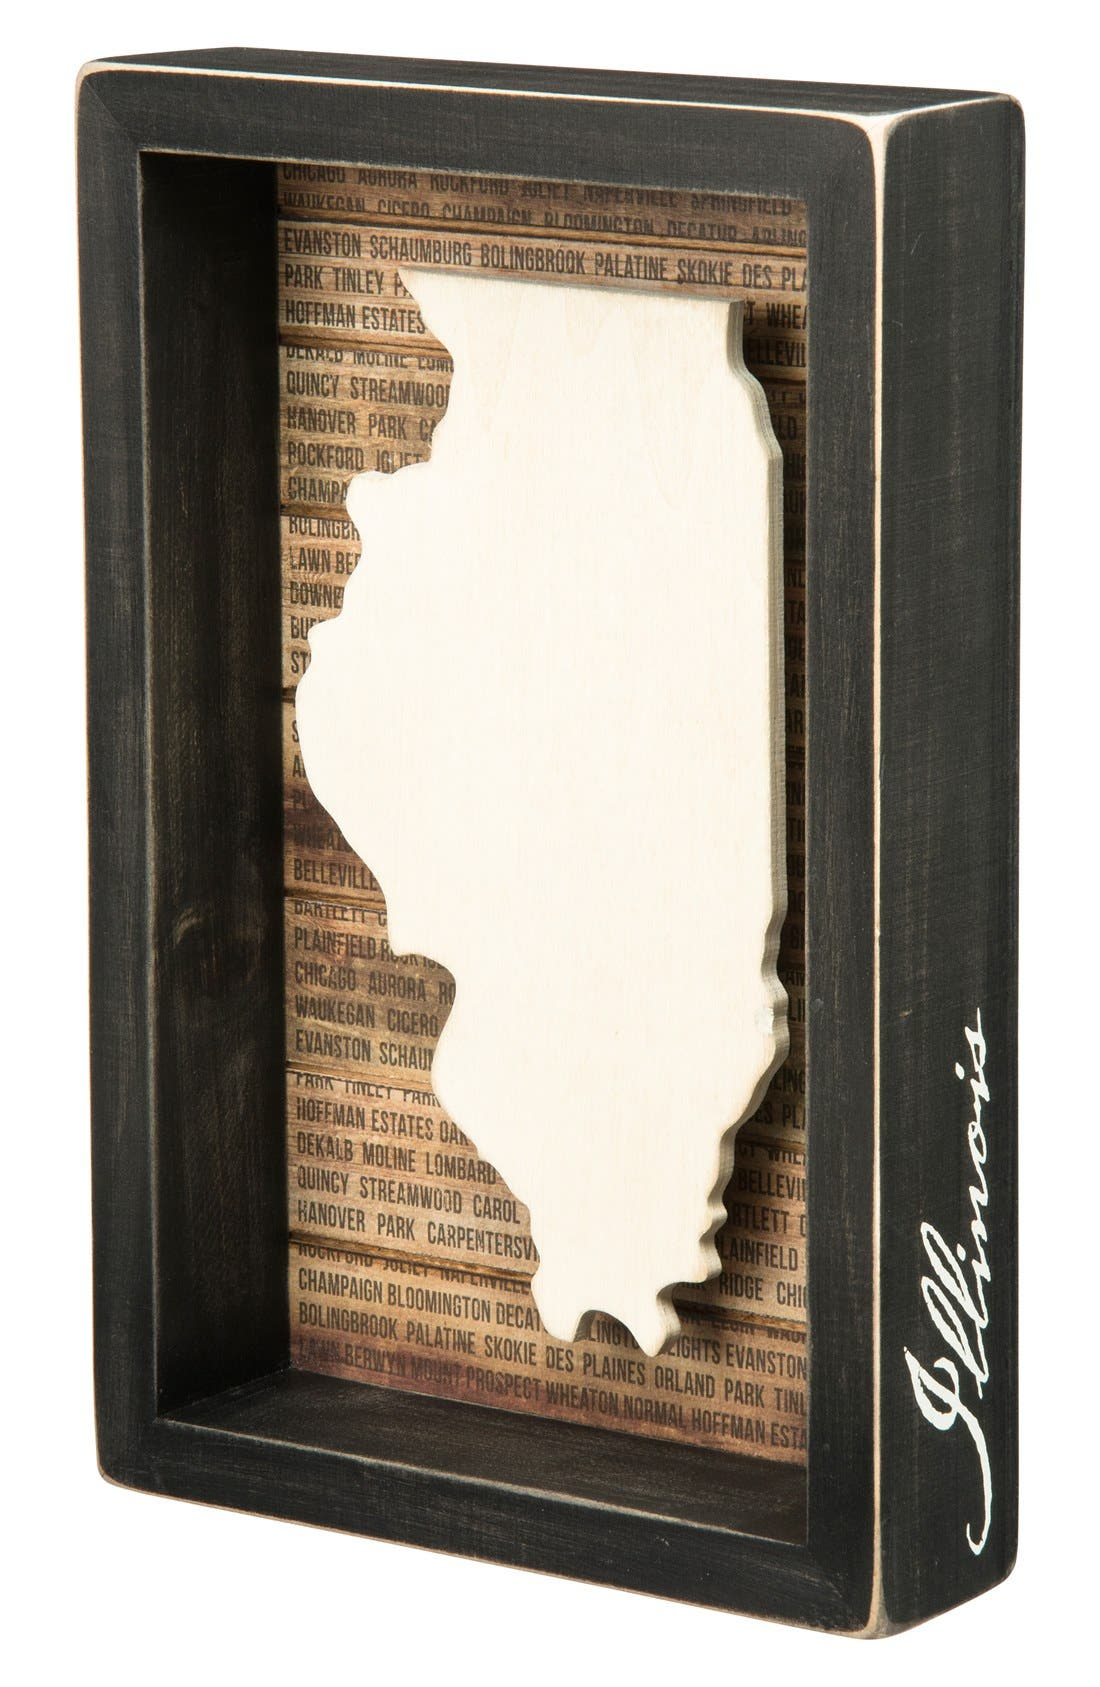 Alternate Image 1 Selected - Primitives by Kathy State Silhouette Wooden Box Sign